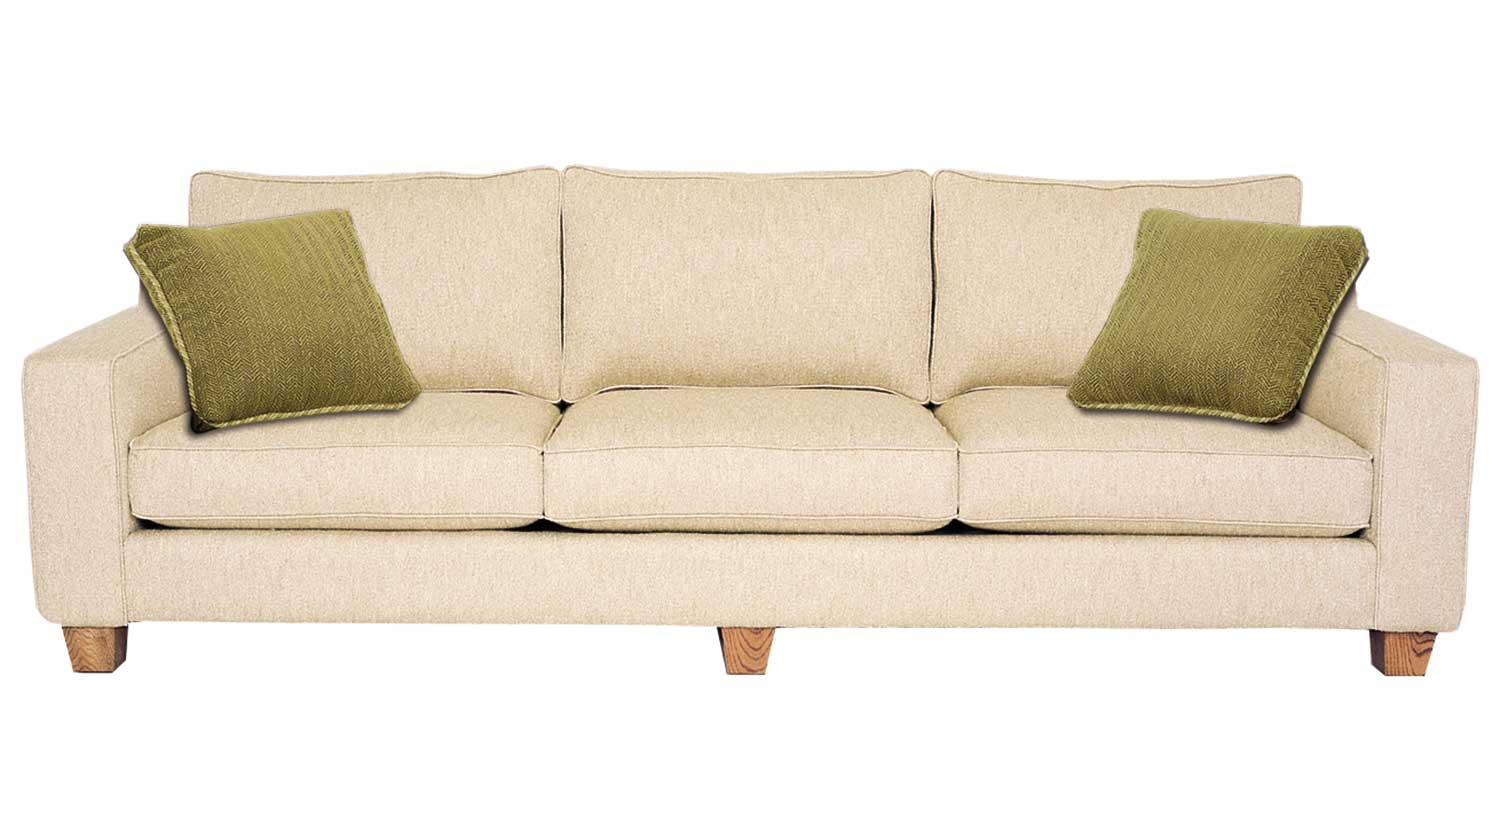 Circle Furniture Metro Sofa Modern Designer Sofa